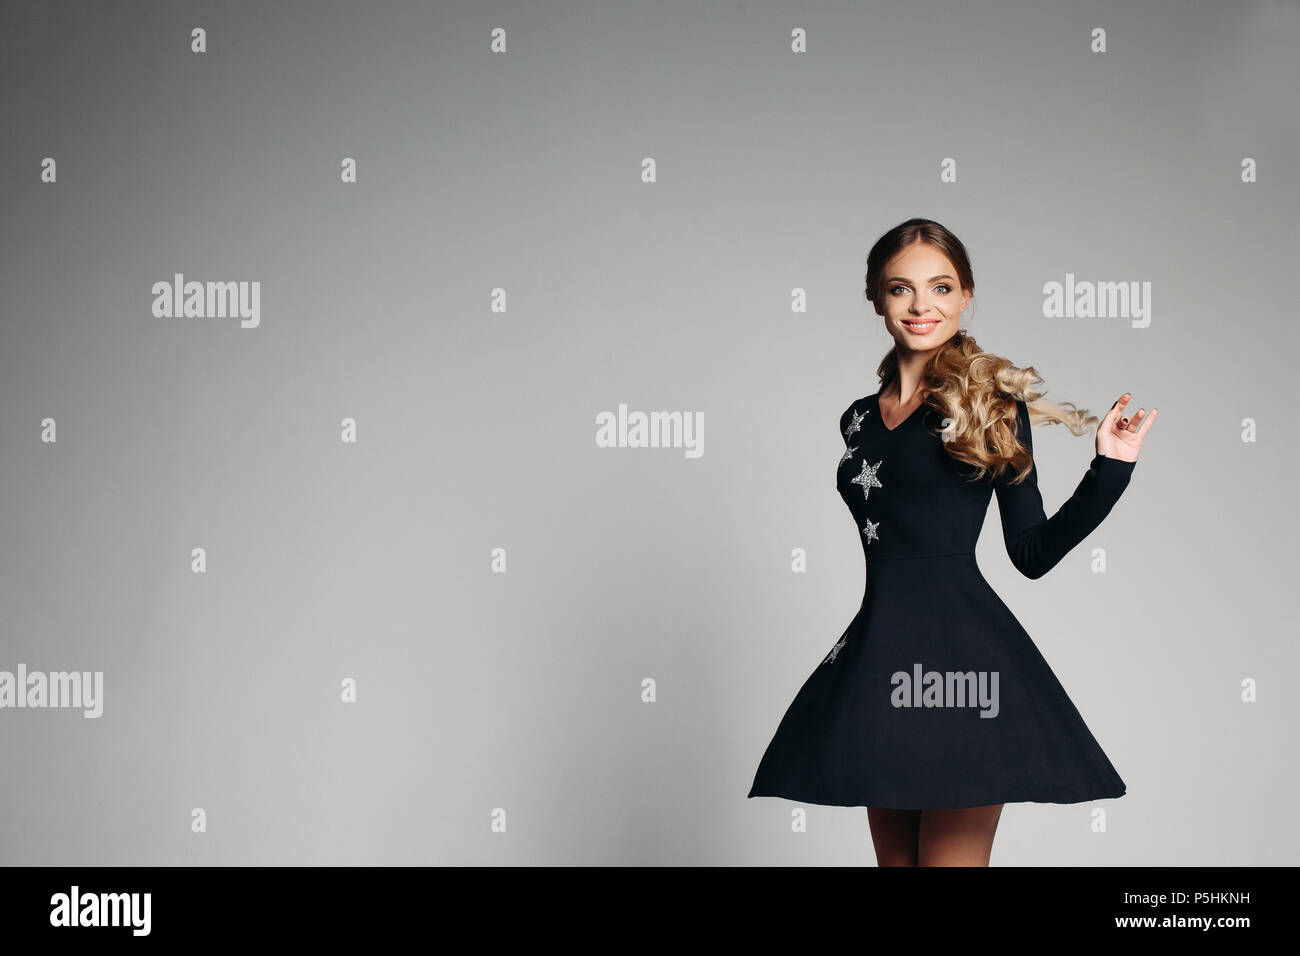 Gorgeous blonde girl with curly hair in black mini dress with silver stars. - Stock Image